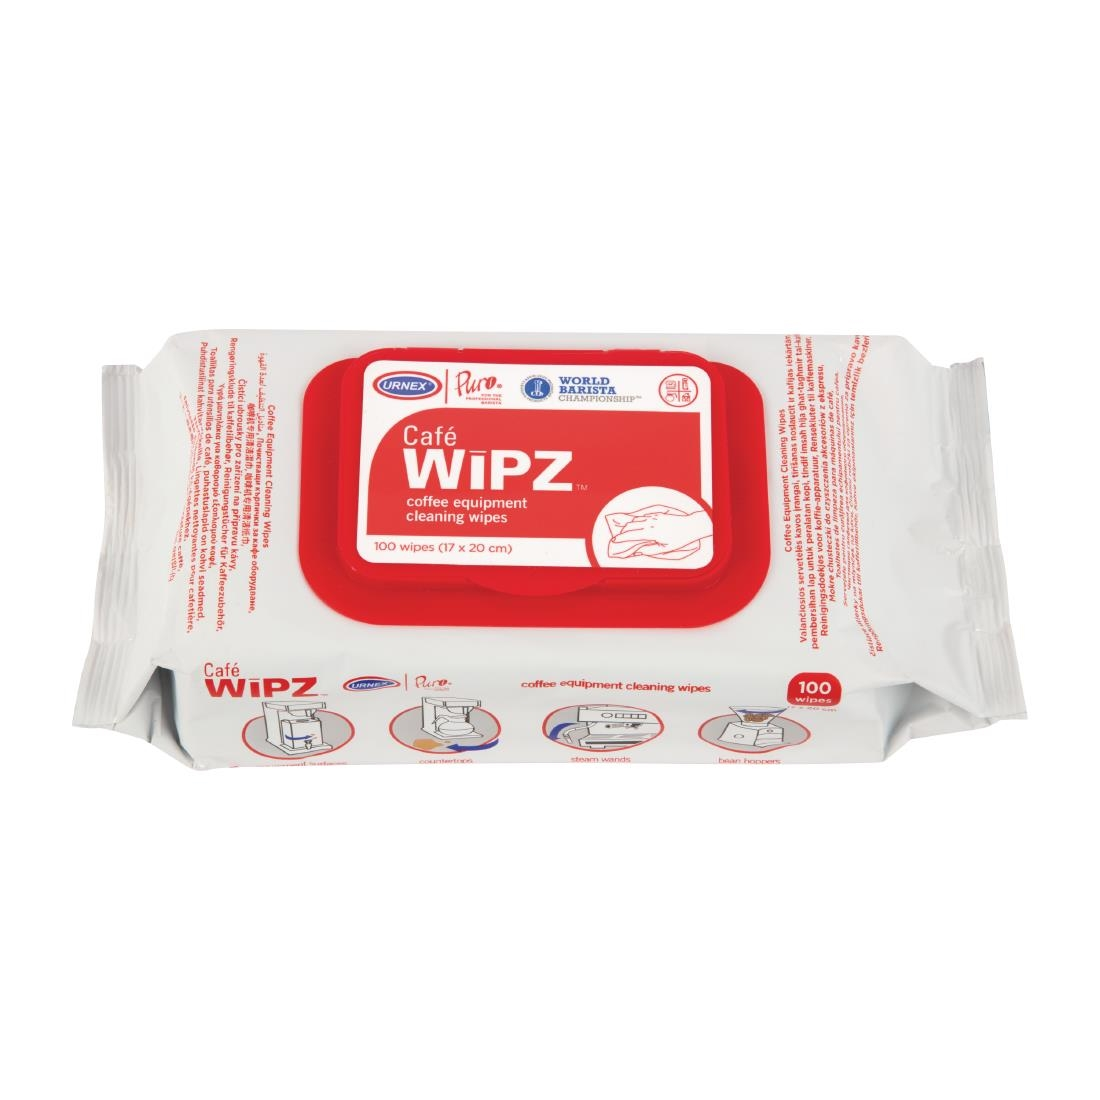 Image of Urnex Café Wipz Coffee Equipment Cleaning Wipes (12 x 100 Pack) Pack of 12